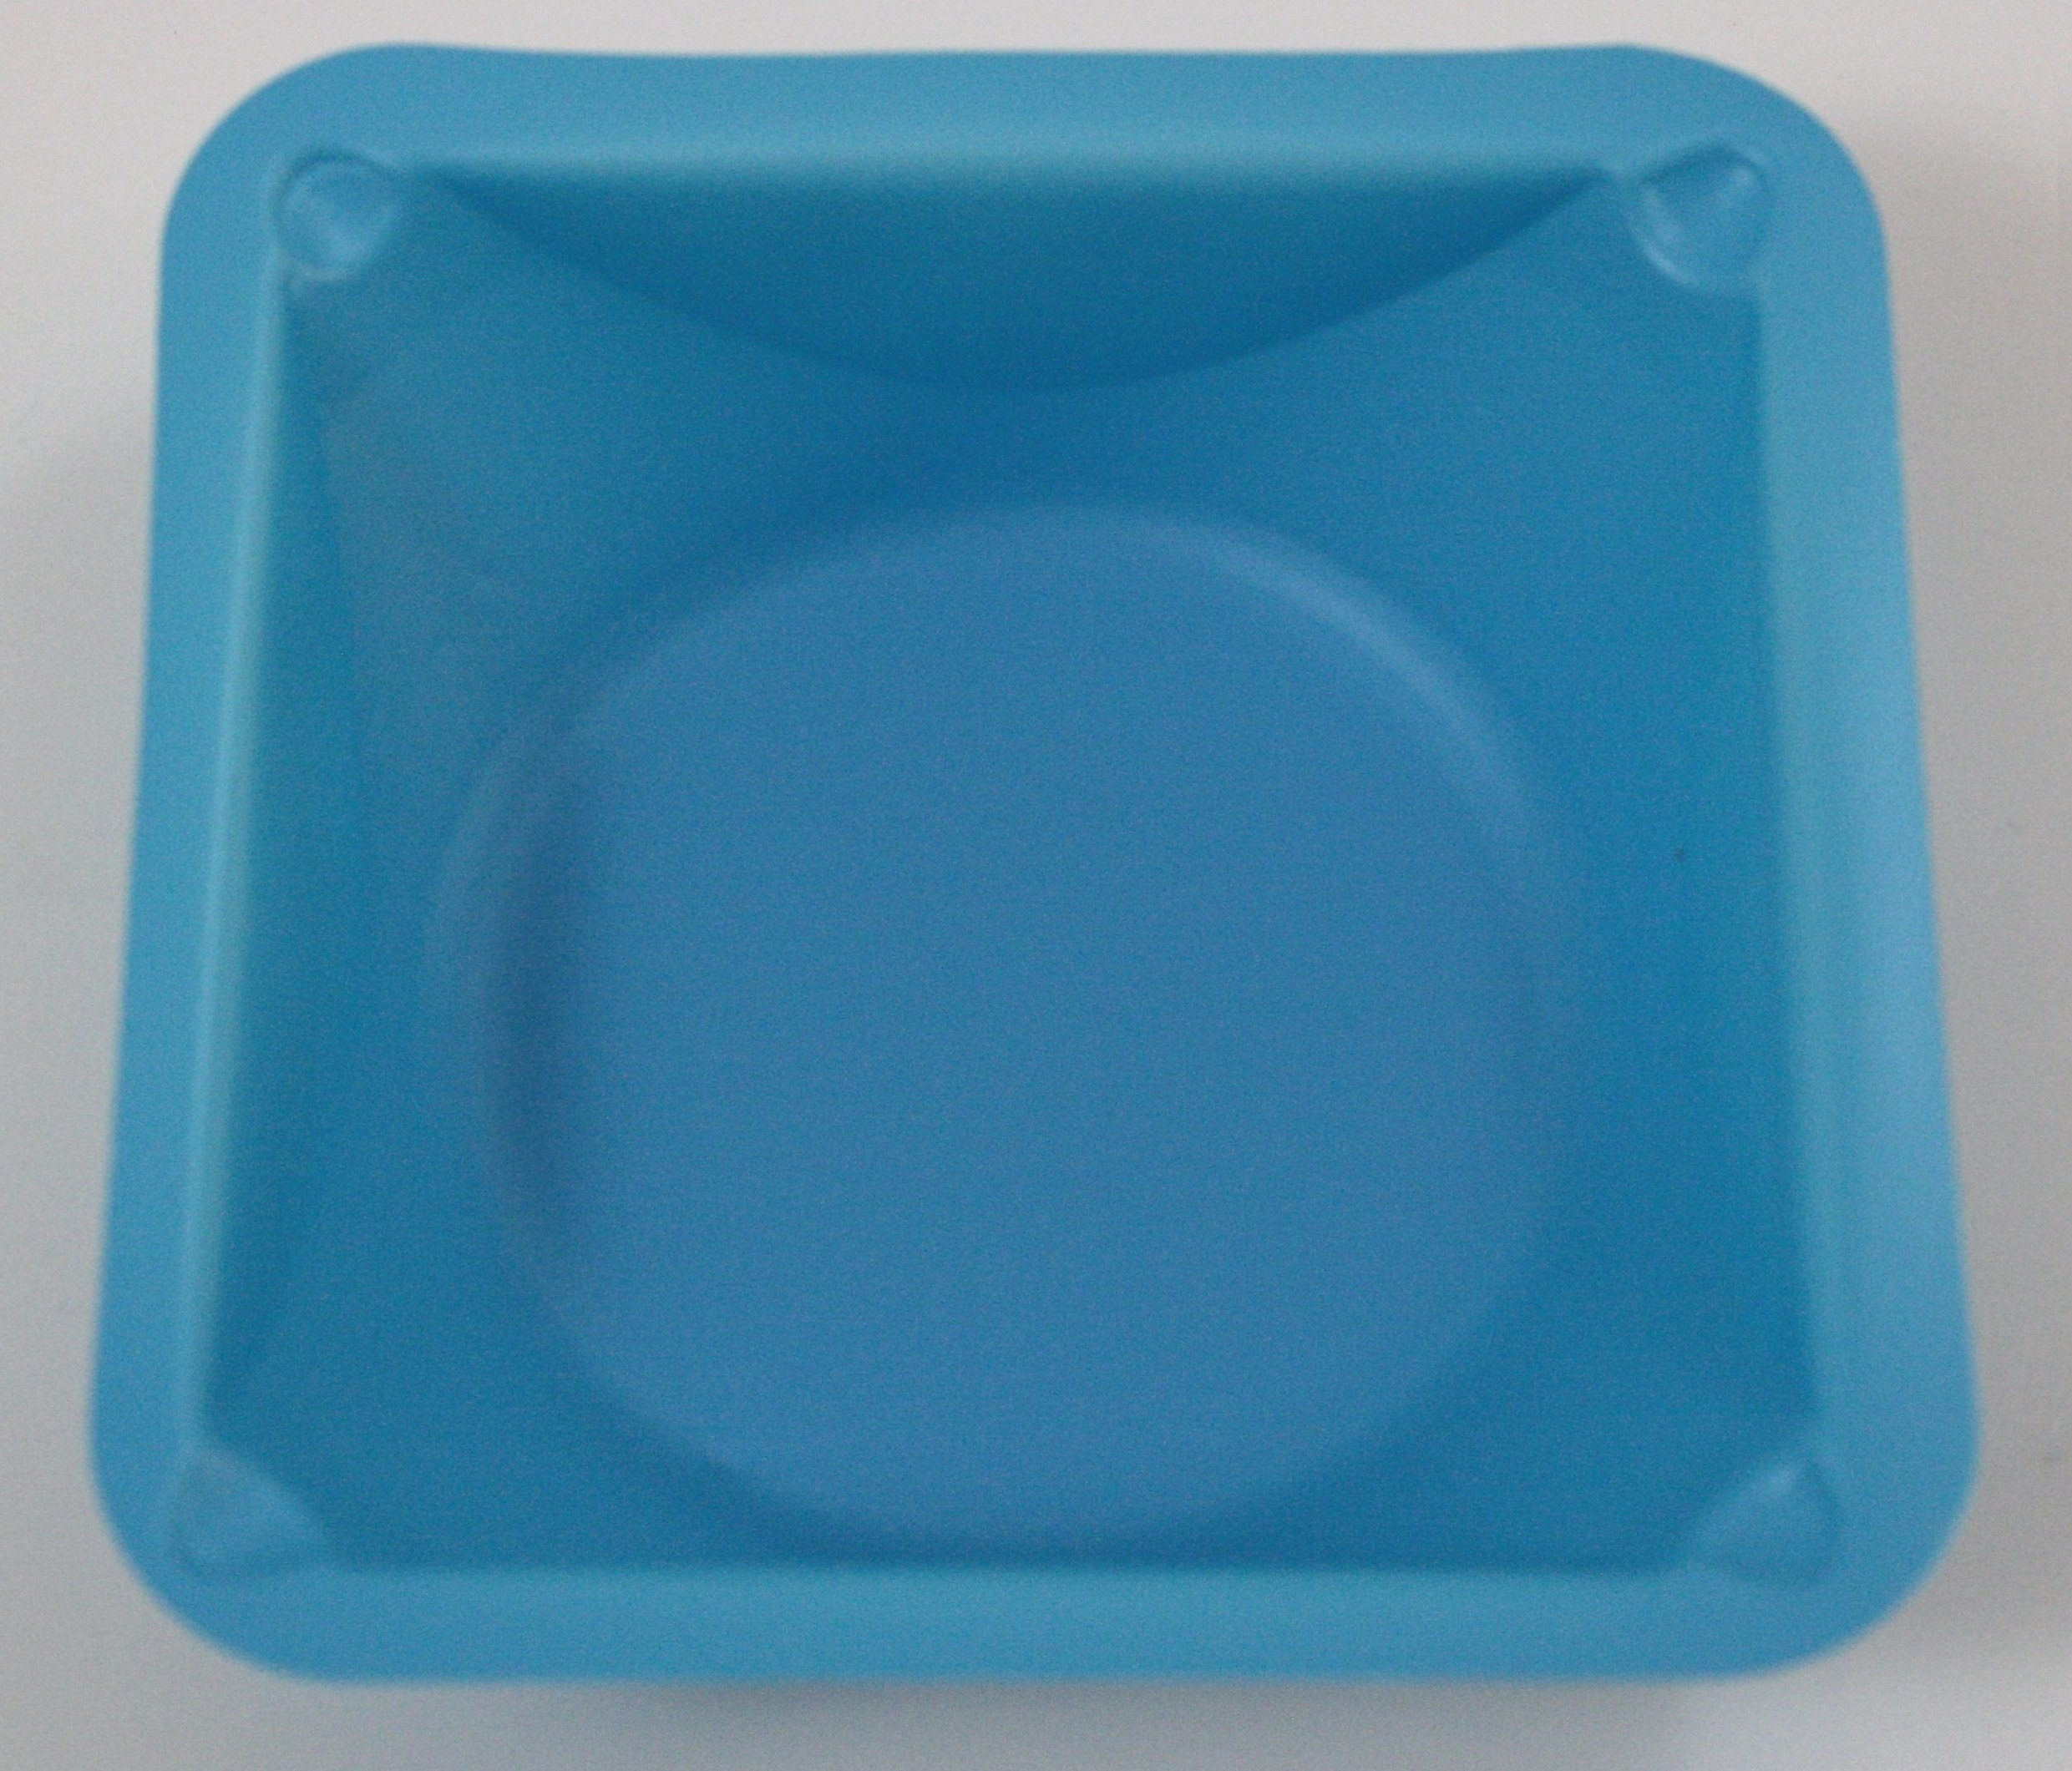 Blue Small Polystyrene Weigh Boats: Sleeve of 500 Weigh Dishes